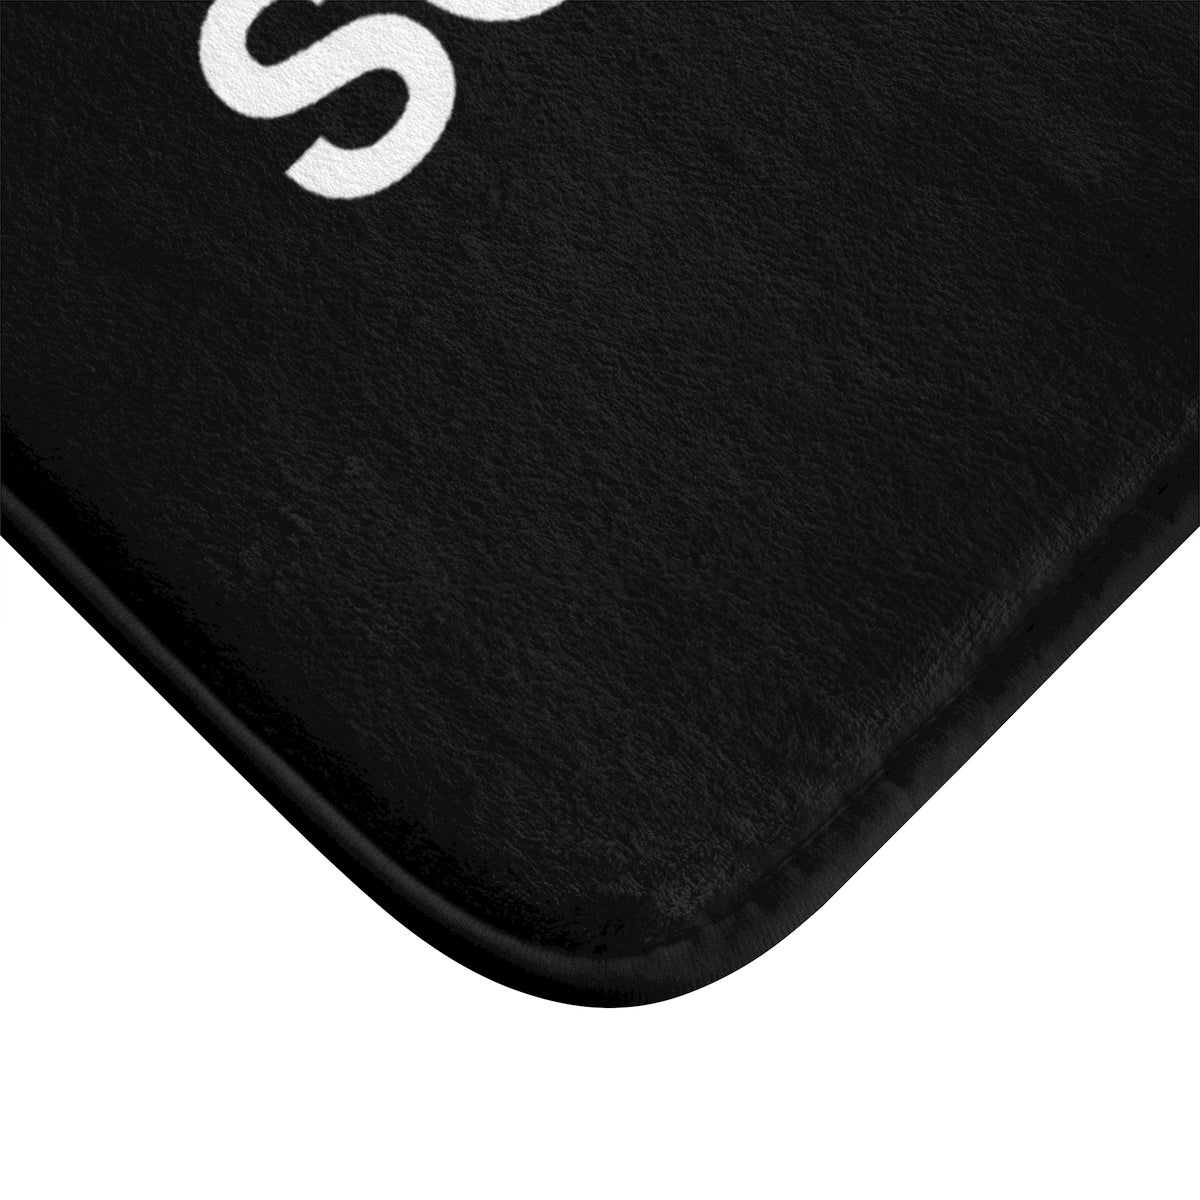 Streetwear-Scattered Logo Bath Rug-Home Decor-Scattered, LLC